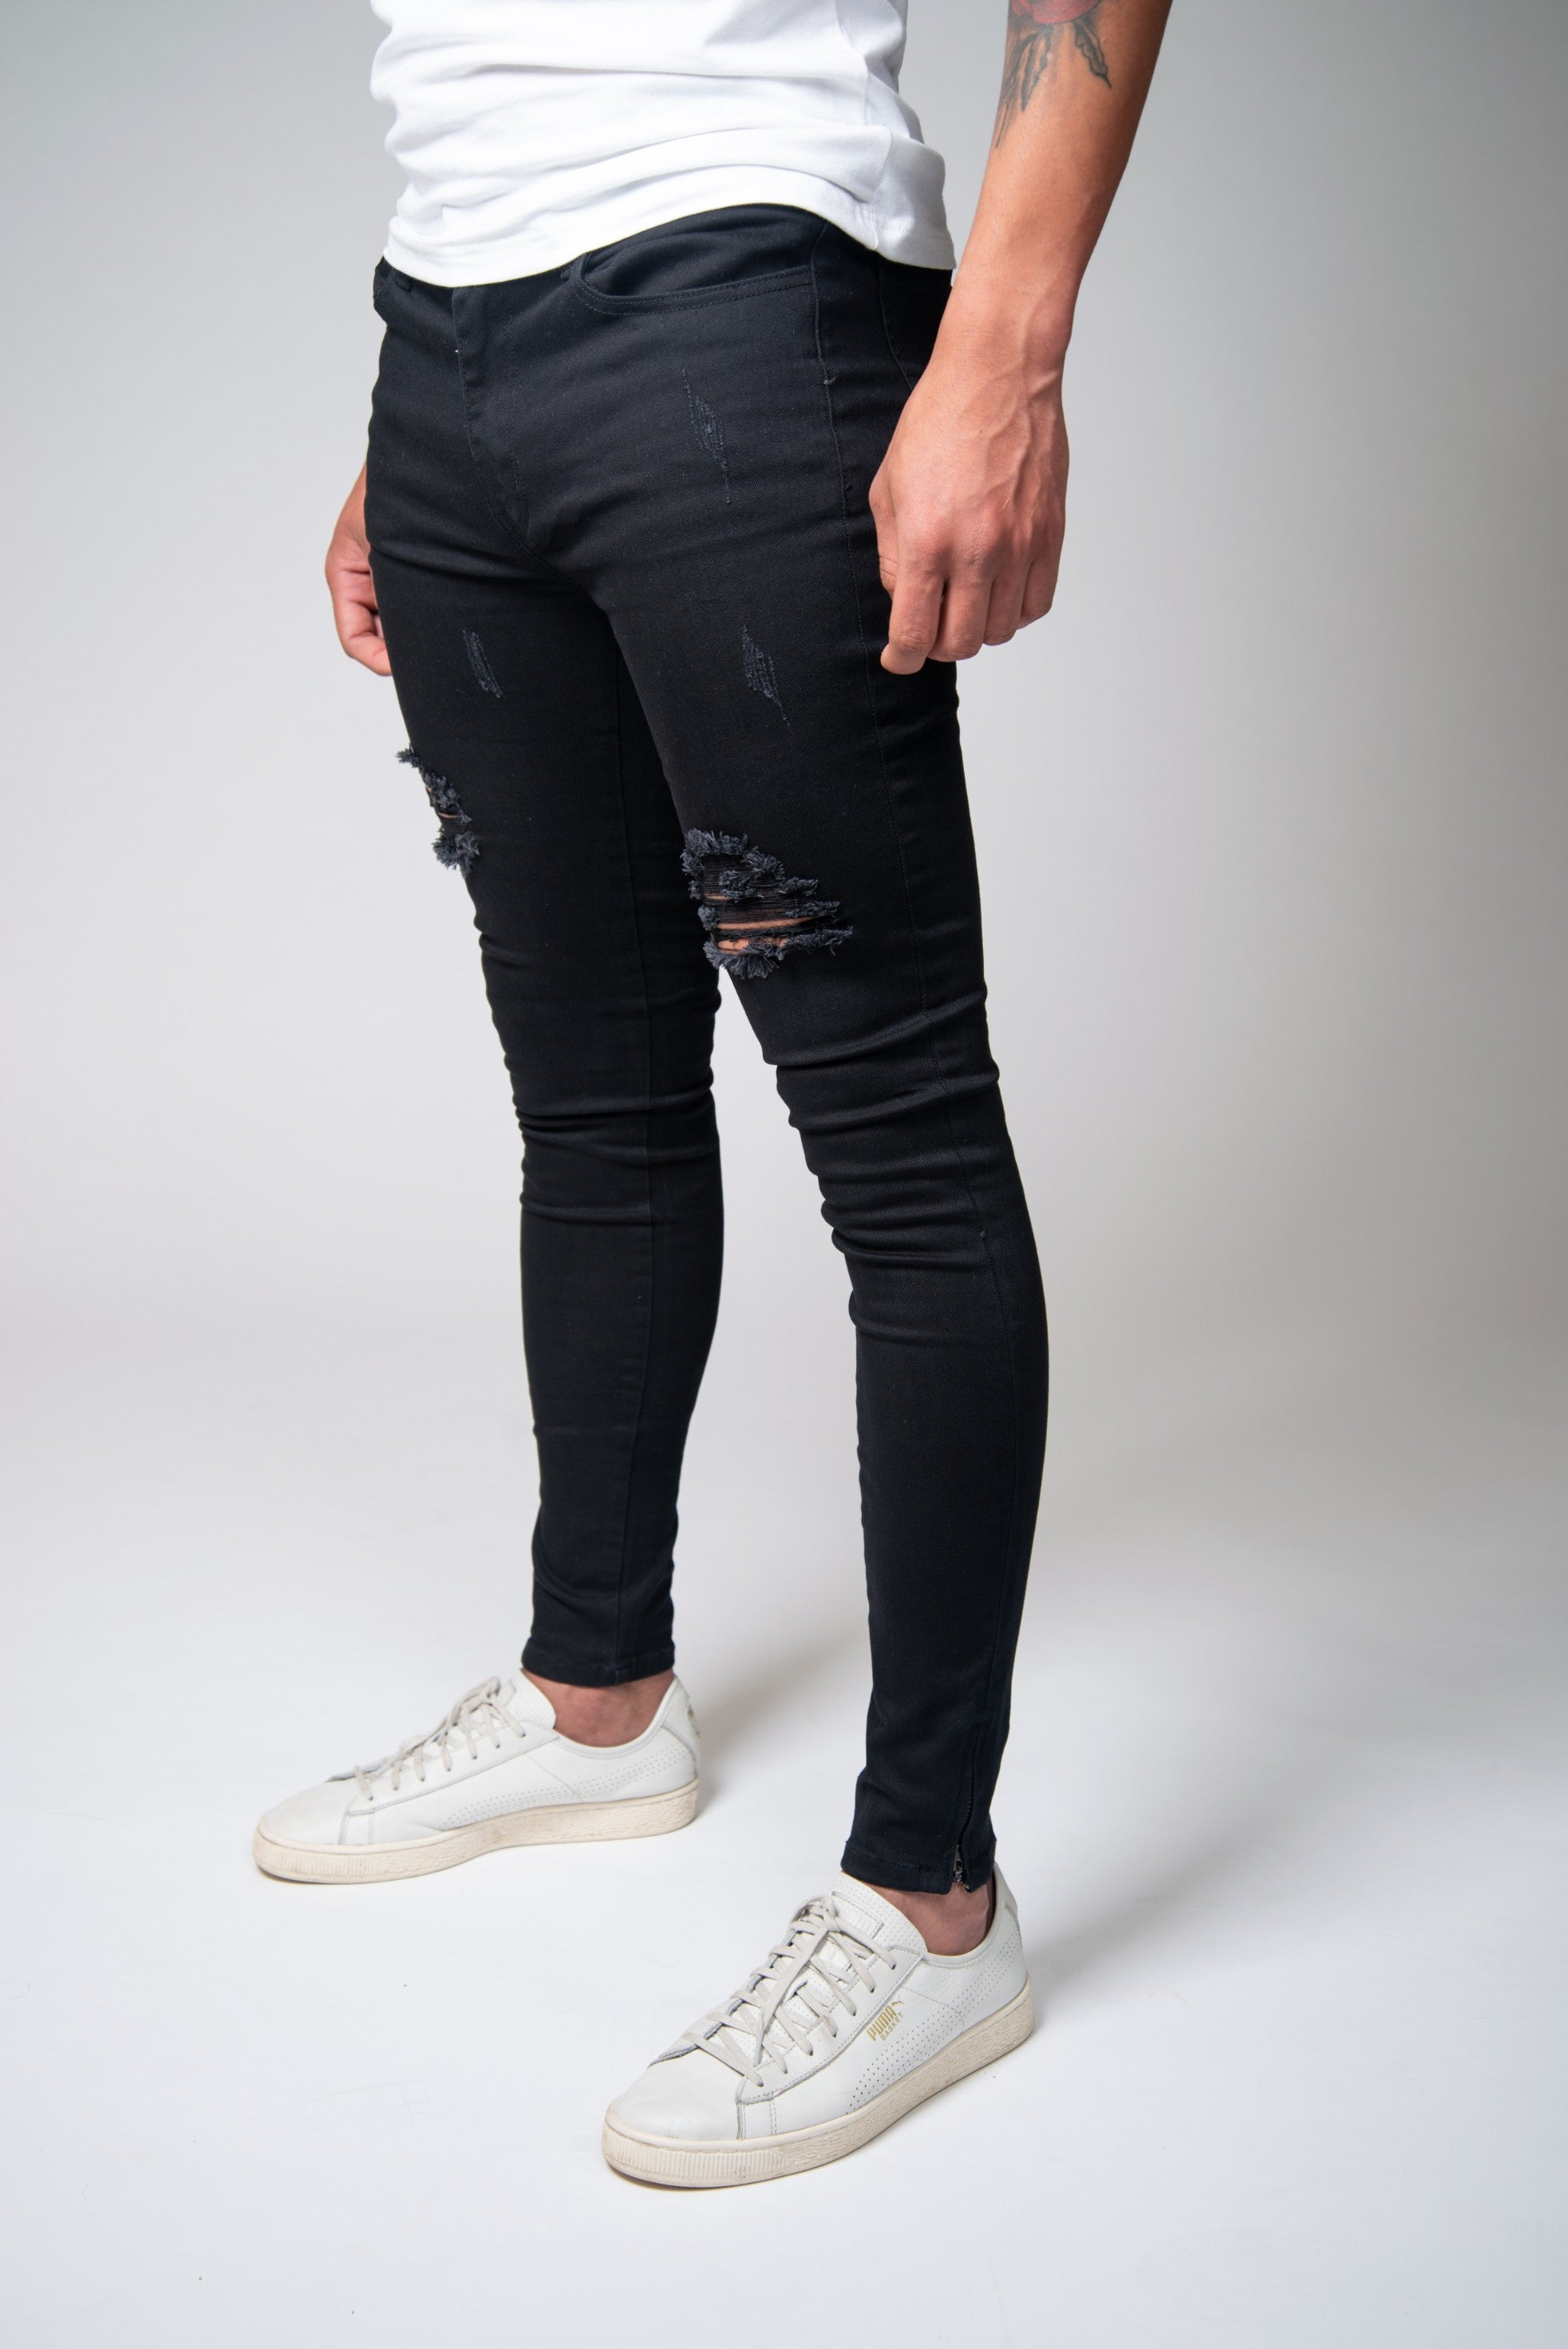 Jet Black Super Spray On Jeans - Ripped   Repaired – Jeans23 acf6e28cc1